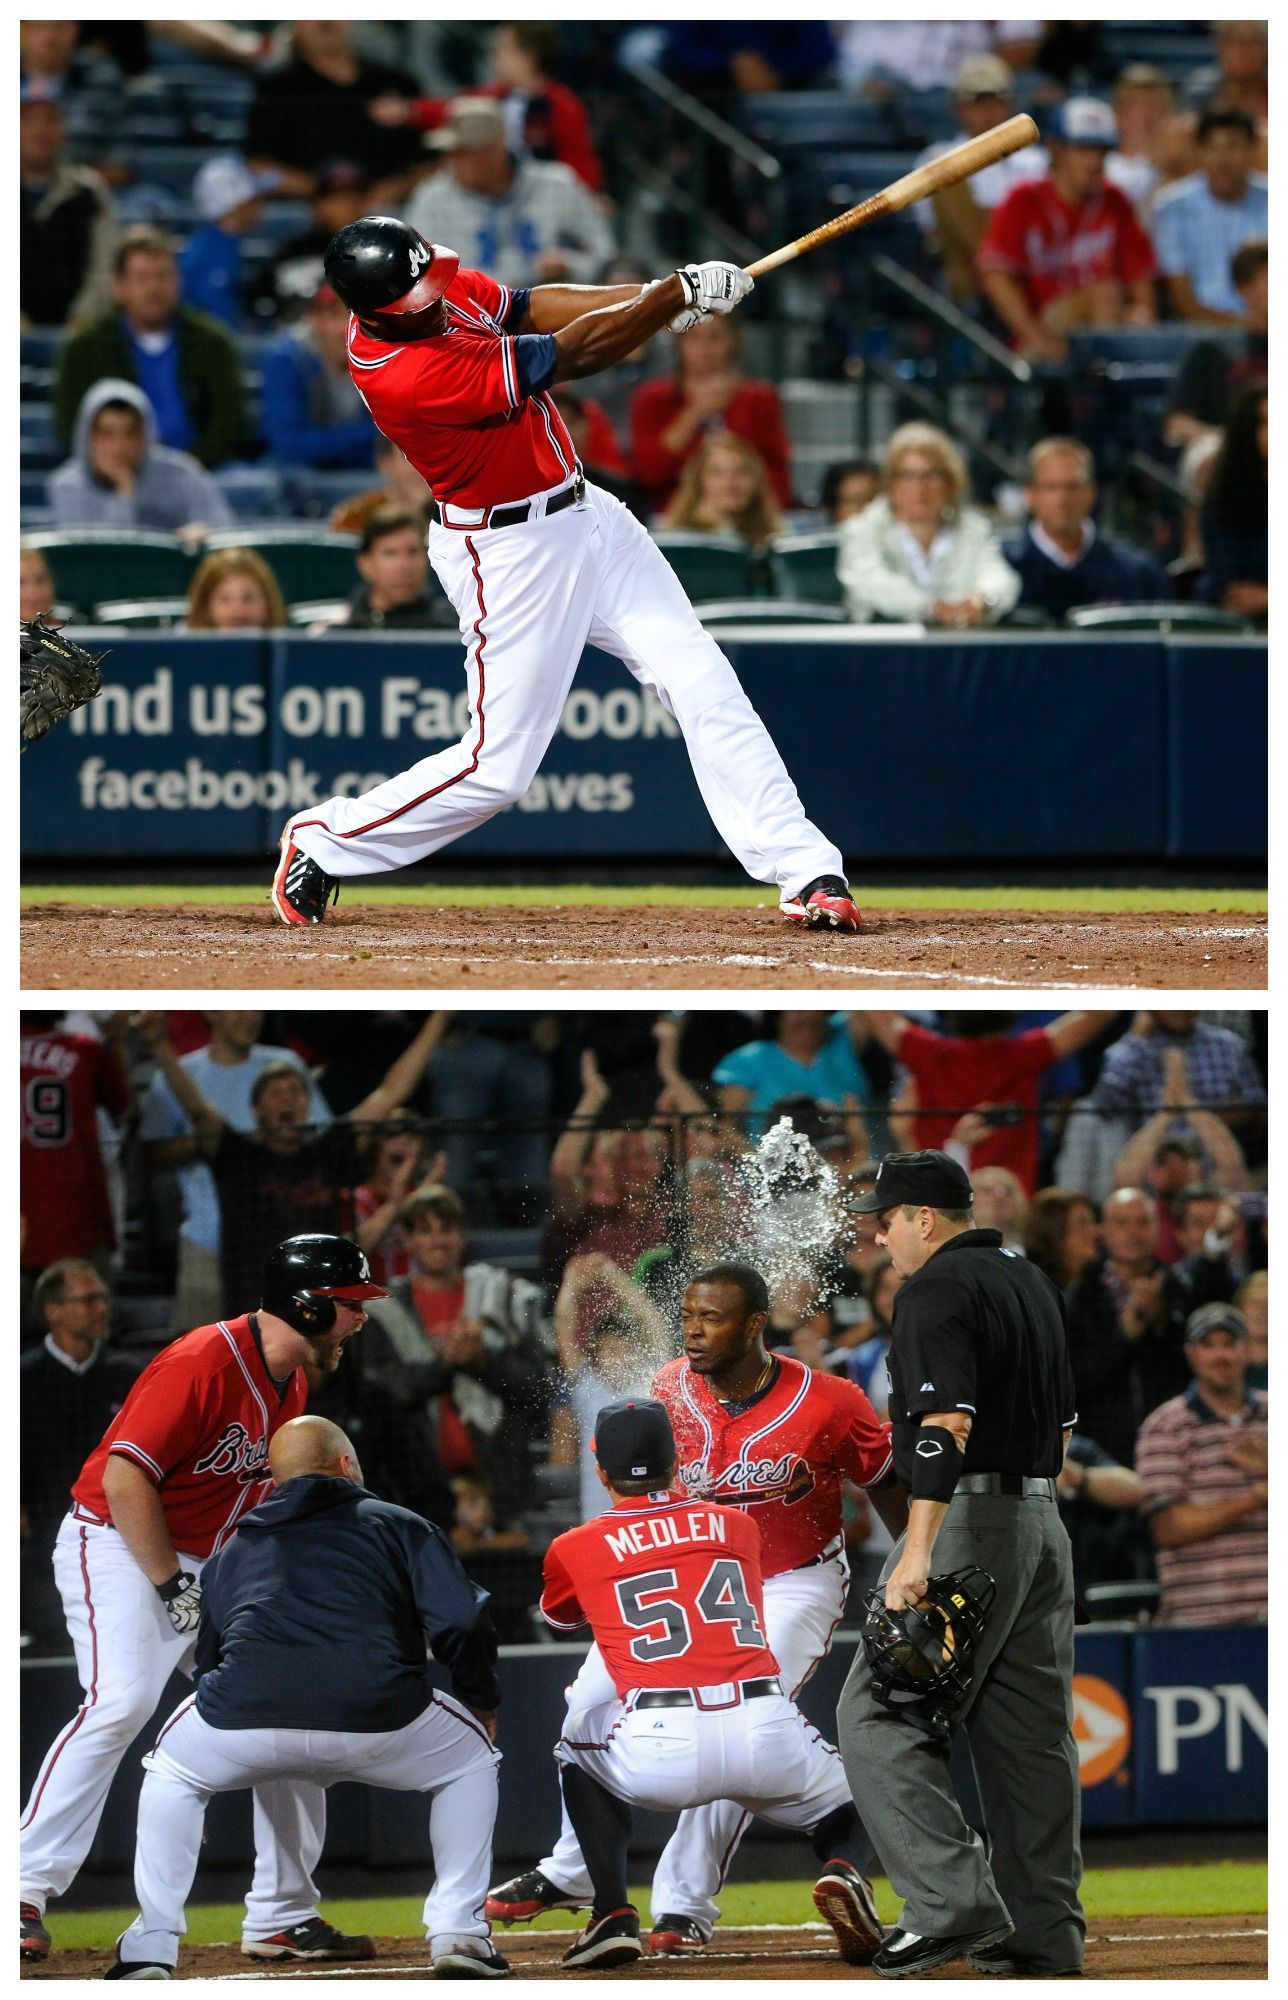 Justin Upton Slams A Home Run In Extra Innings To Lead The Braves To Victory Over The Nationals Atlanta Braves Baseball Atlanta Braves Braves Baseball